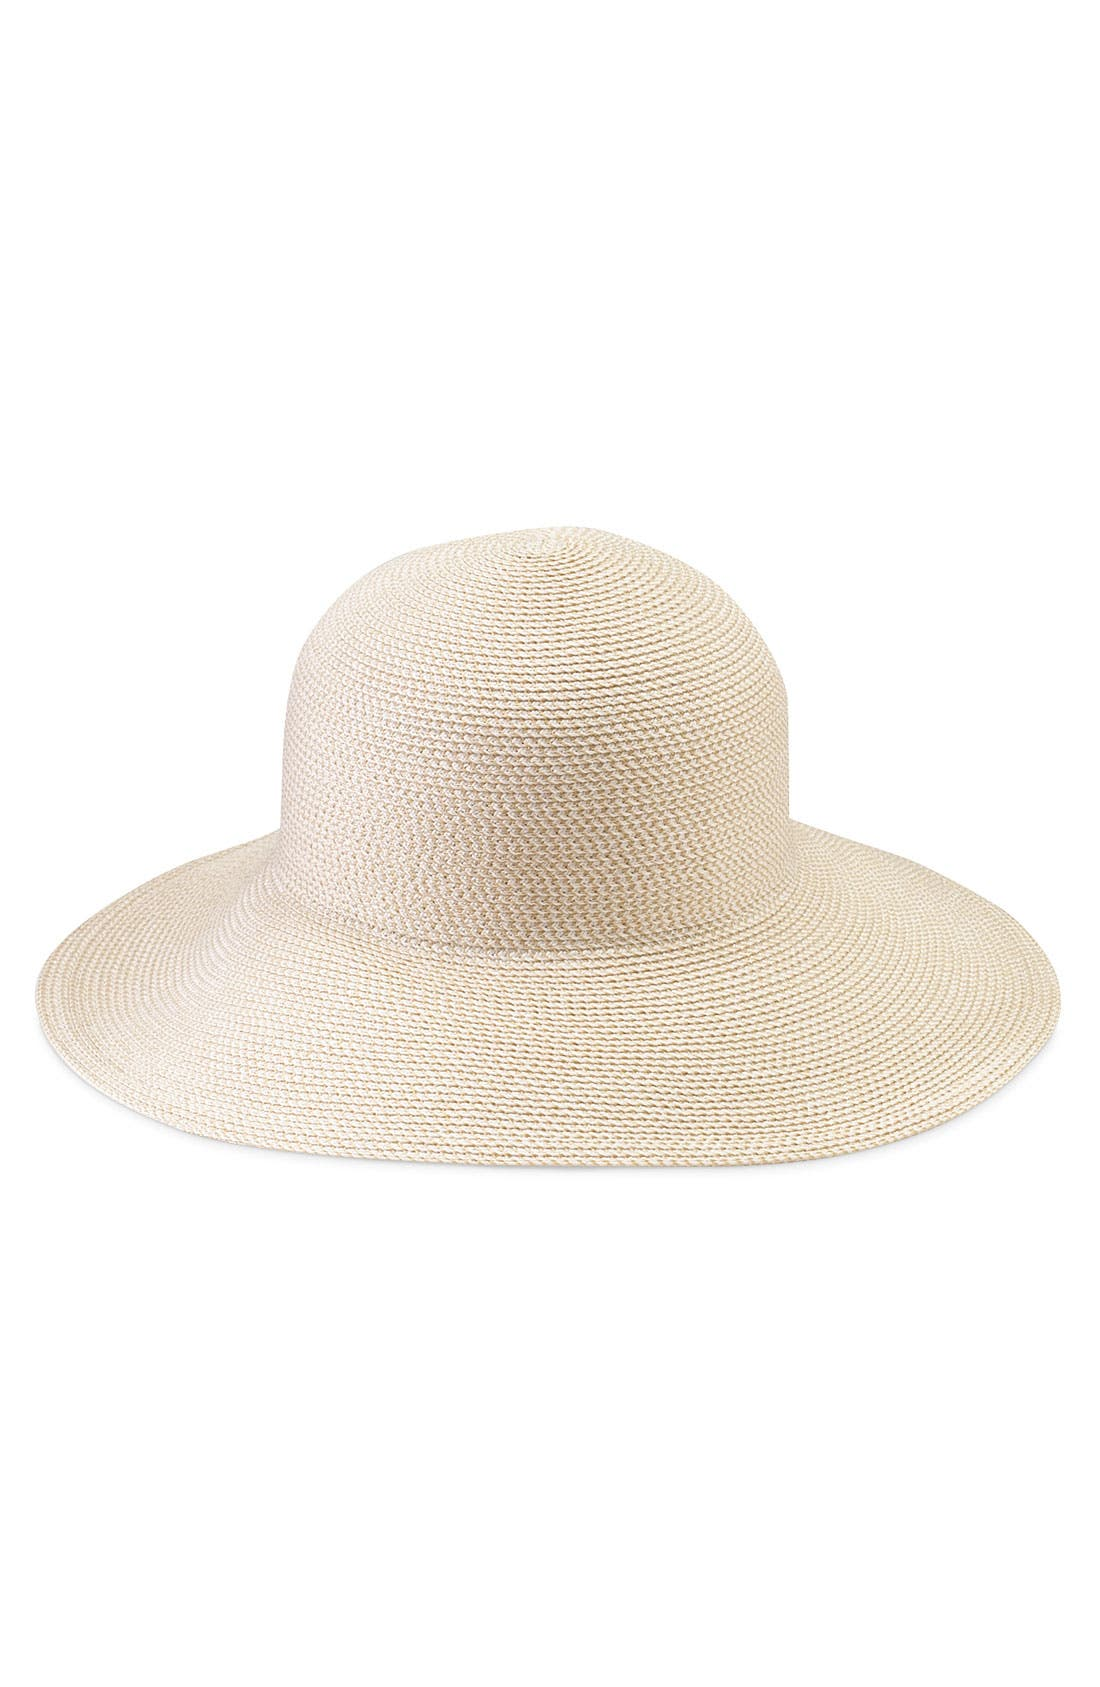 Alternate Image 1 Selected - Eric Javits 'Squishee® IV' Wide Brim Hat